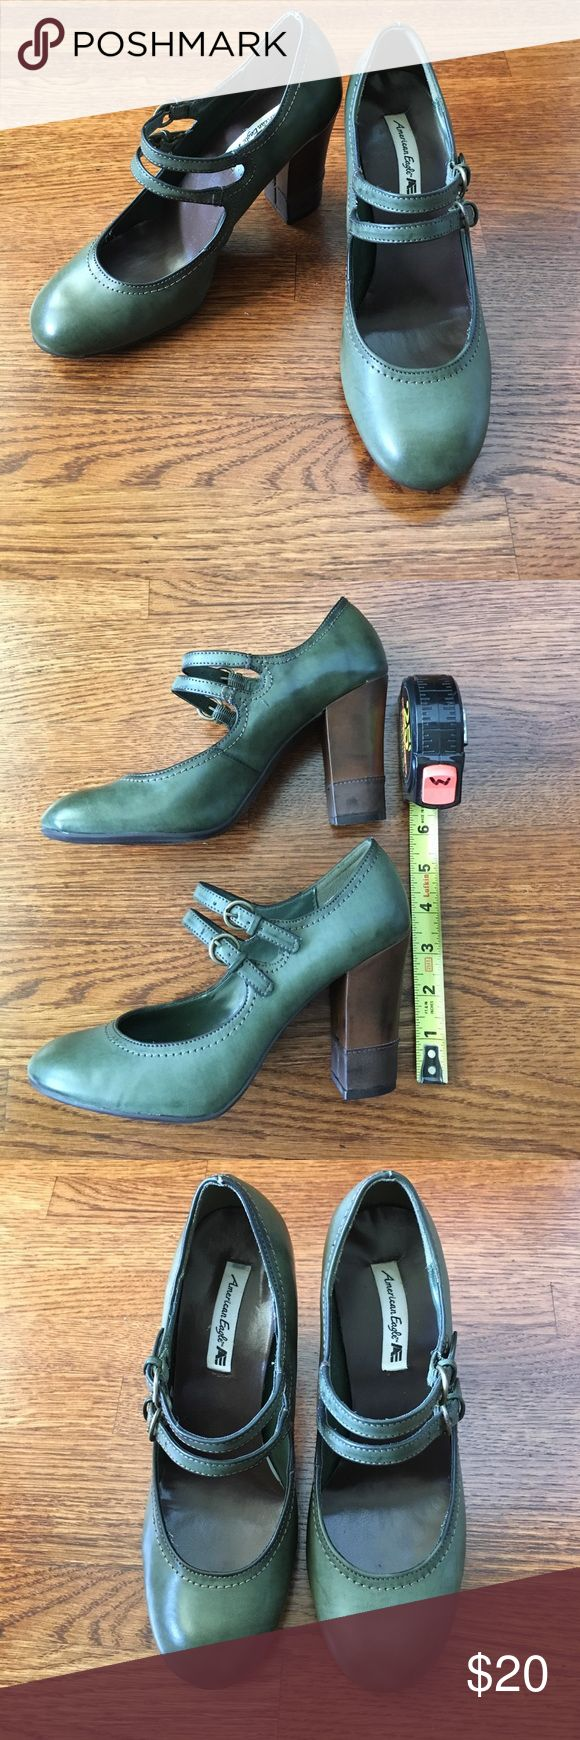 """American Eagle olive green Mary Jane pumps American Eagle olive green Mary Jane pumps. All man-made materials. Super cute double buckles and brown and tan color block 3.75"""" heels. Only worn a few times, minor scuffs as shown in pics. US 7.5 American Eagle by Payless Shoes Heels"""